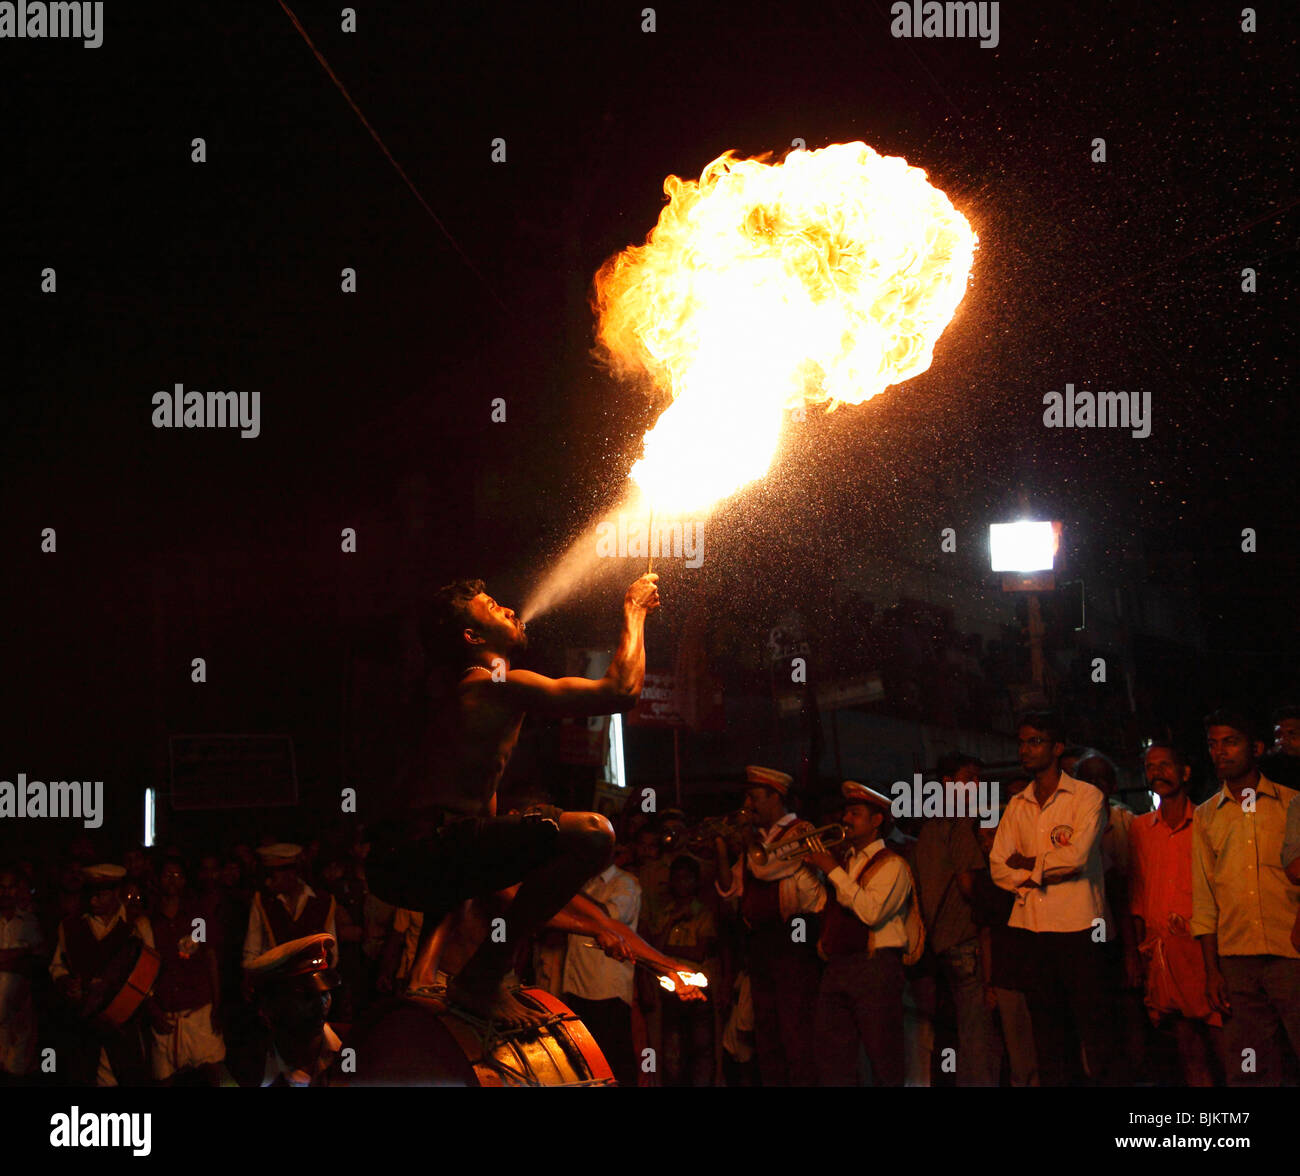 Fire eater, fire-breather, temple festival in Pulinkudi, Kerala state, India, Asia - Stock Image